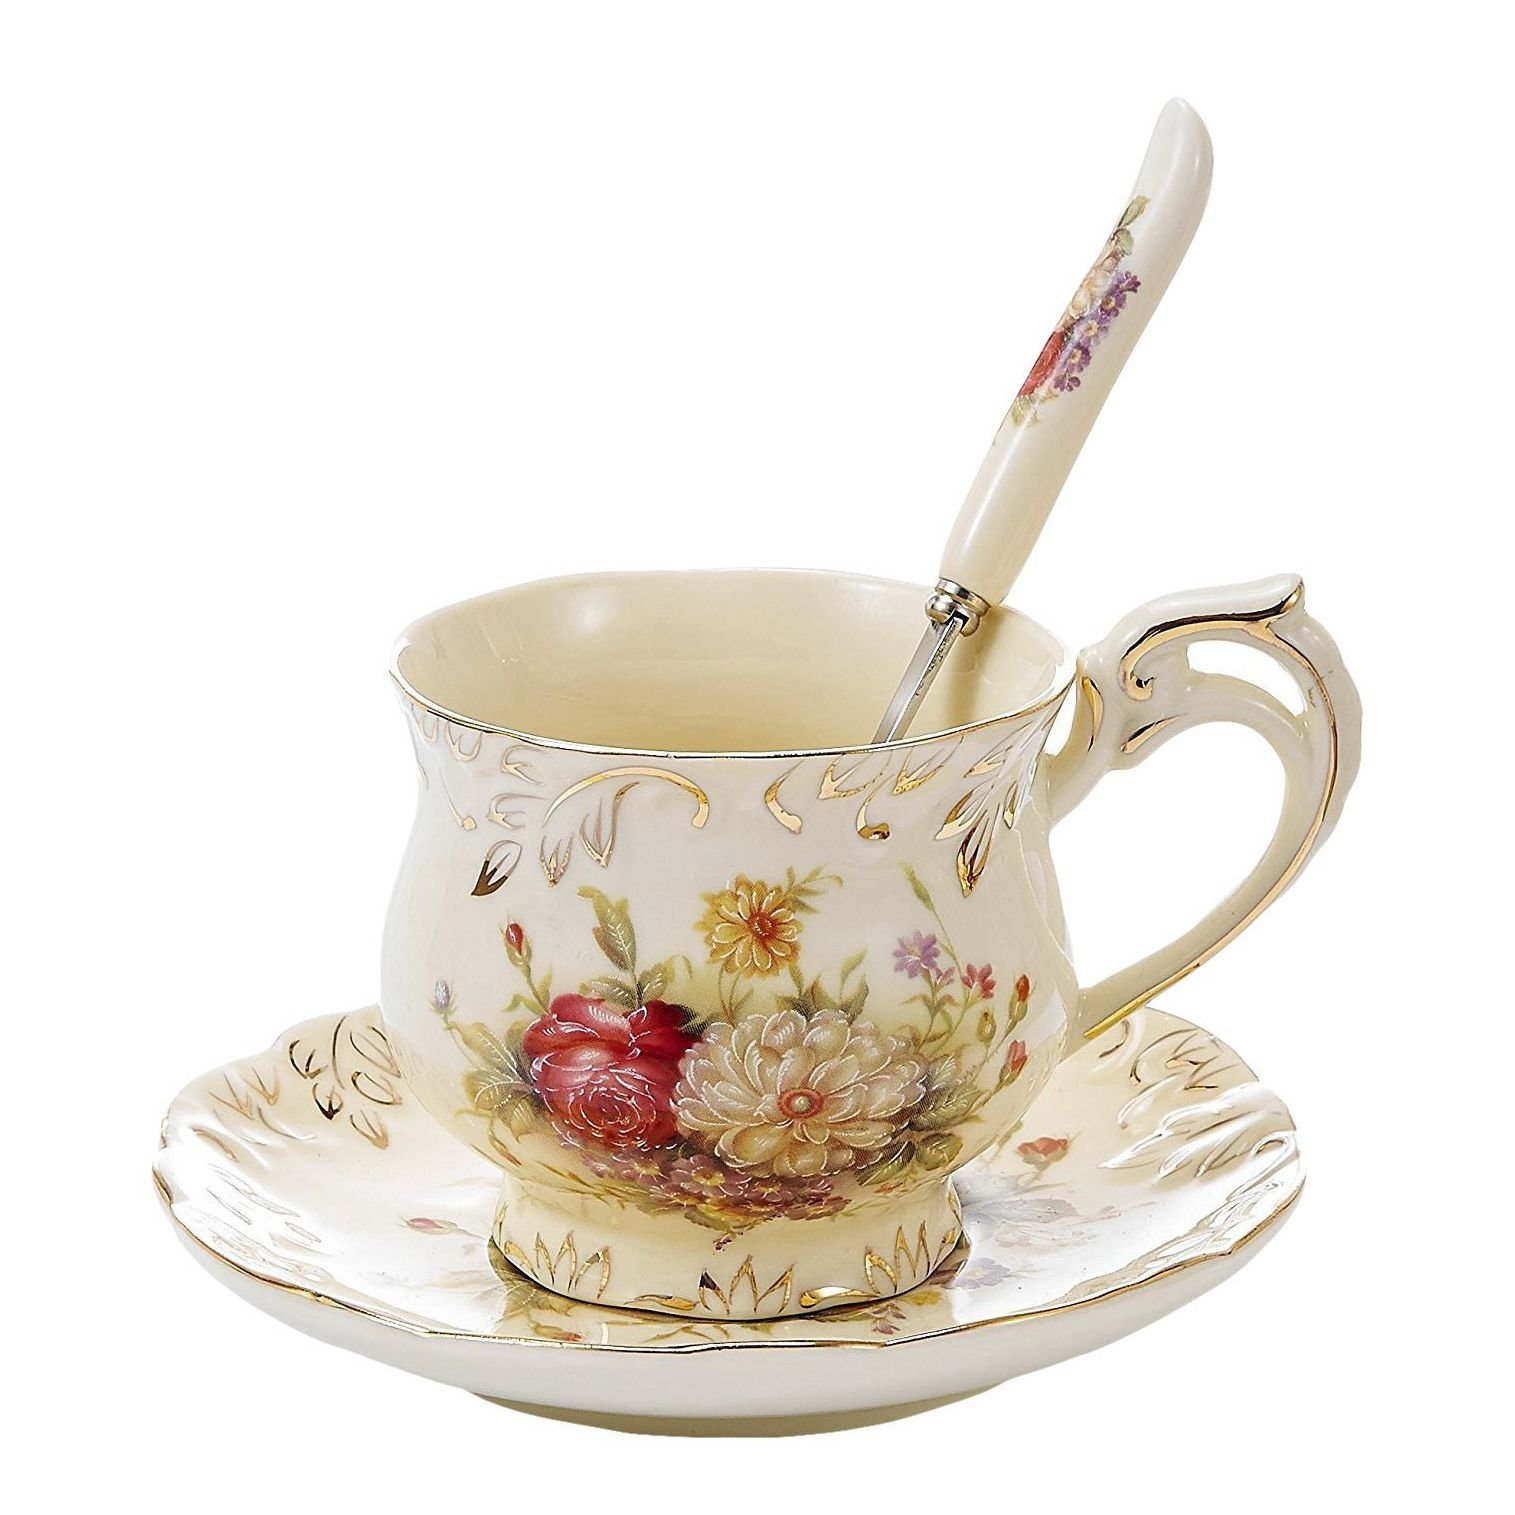 """Panbado 3-Piece Ivory China Gold Rimmed Tea Coffee Set Porcelain Flower Tea Service with 8.5 Ounce 4.5"""" Cup 6"""" Saucer and 6"""" Spoon(Set of 3)"""